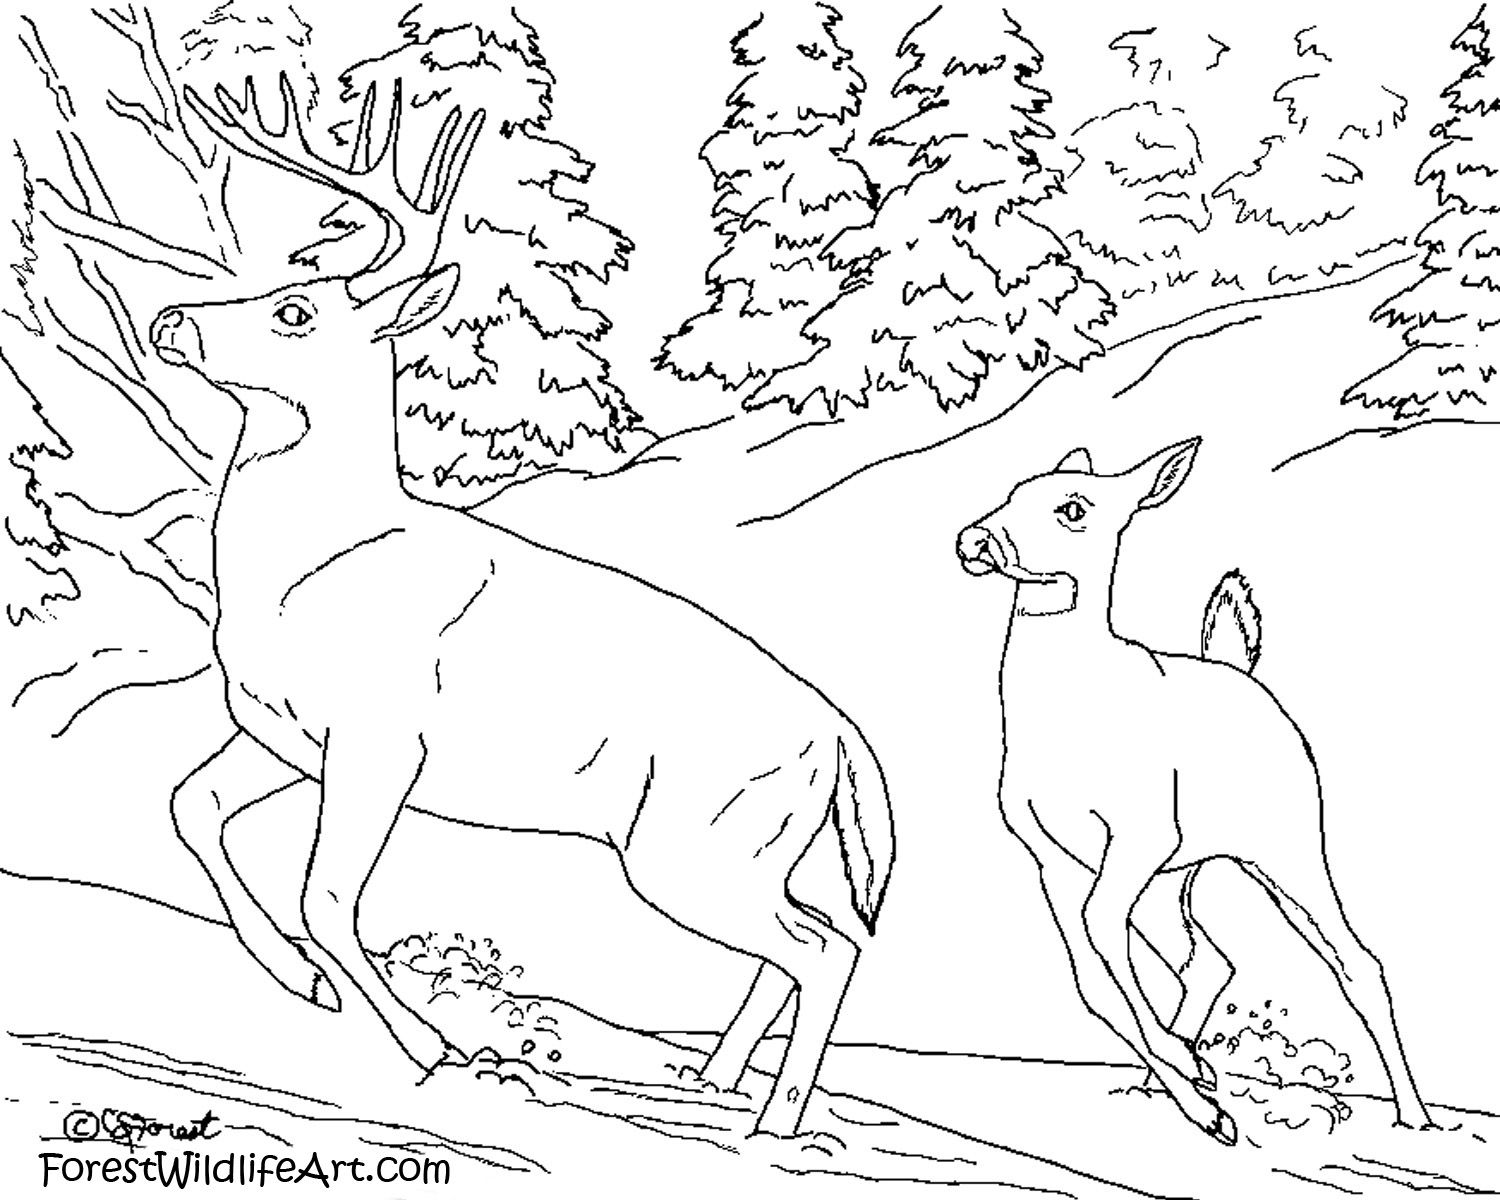 pictures that you can color and print out here is the original full color painting - Kids Color Book